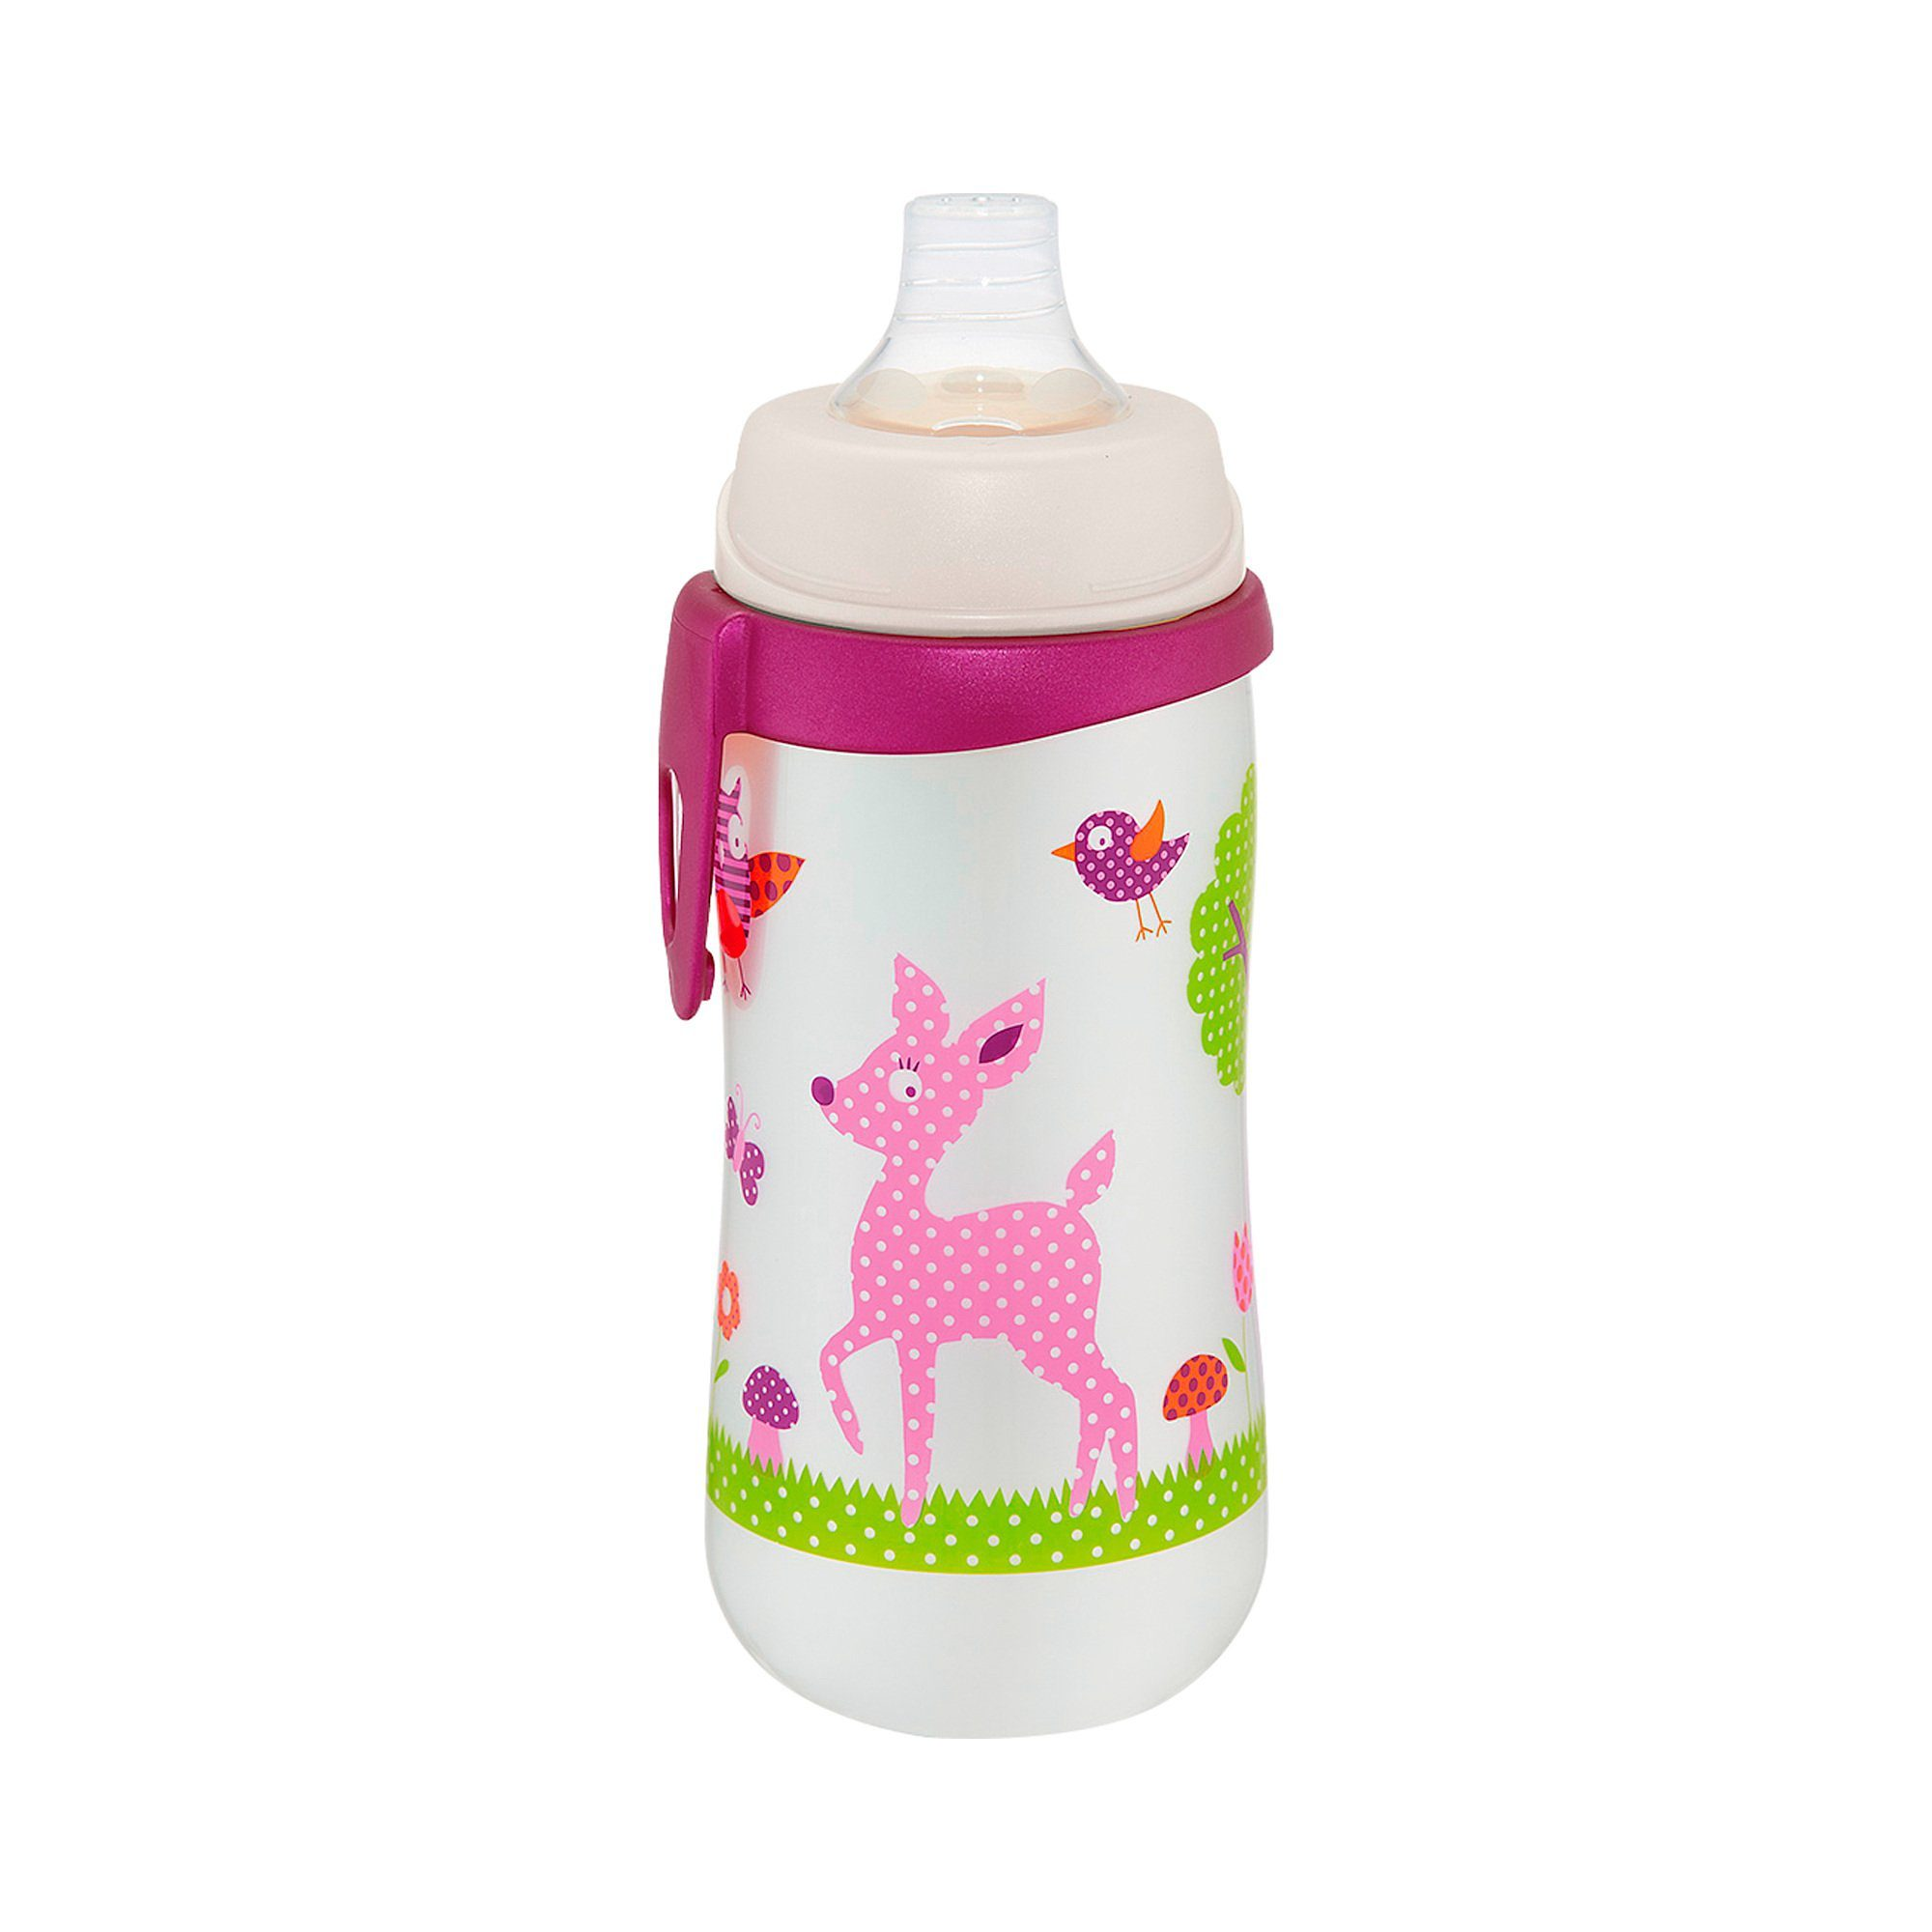 NIP Trinkflasche First Cup Waldtiere